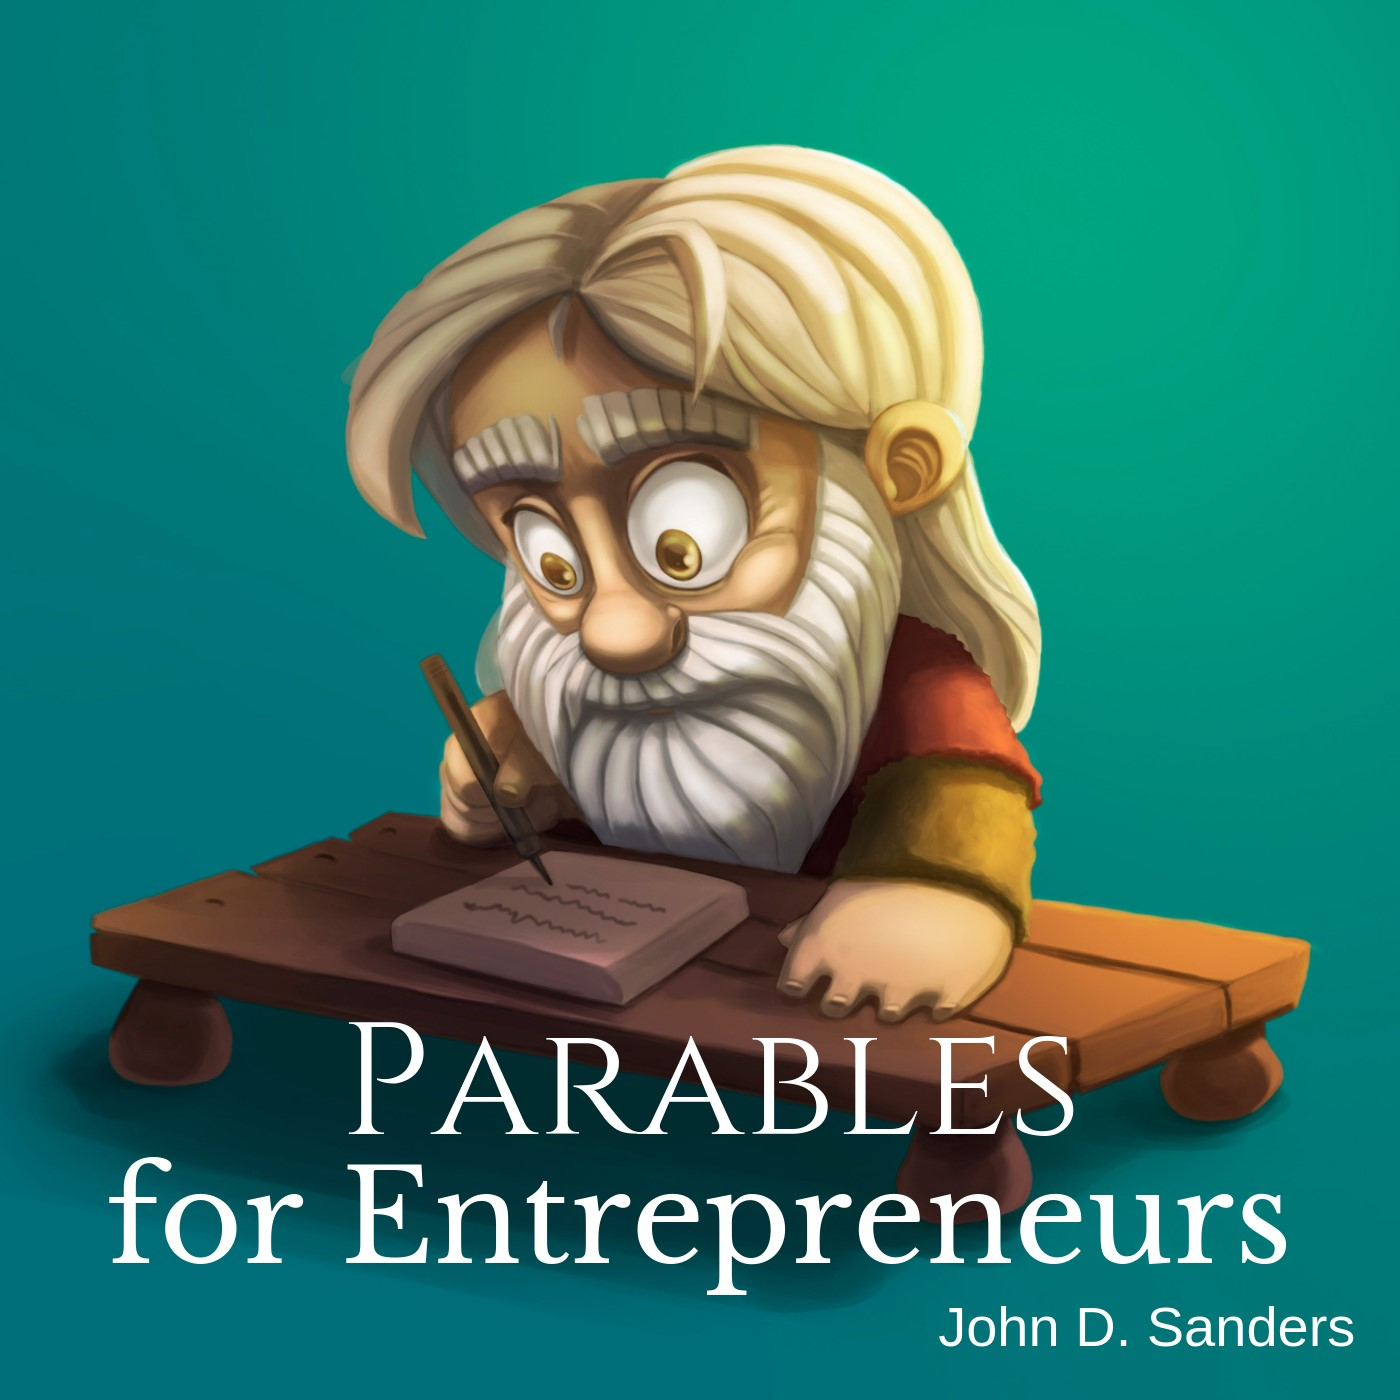 Preface and Why I Wrote Parables for Entrepreneurs